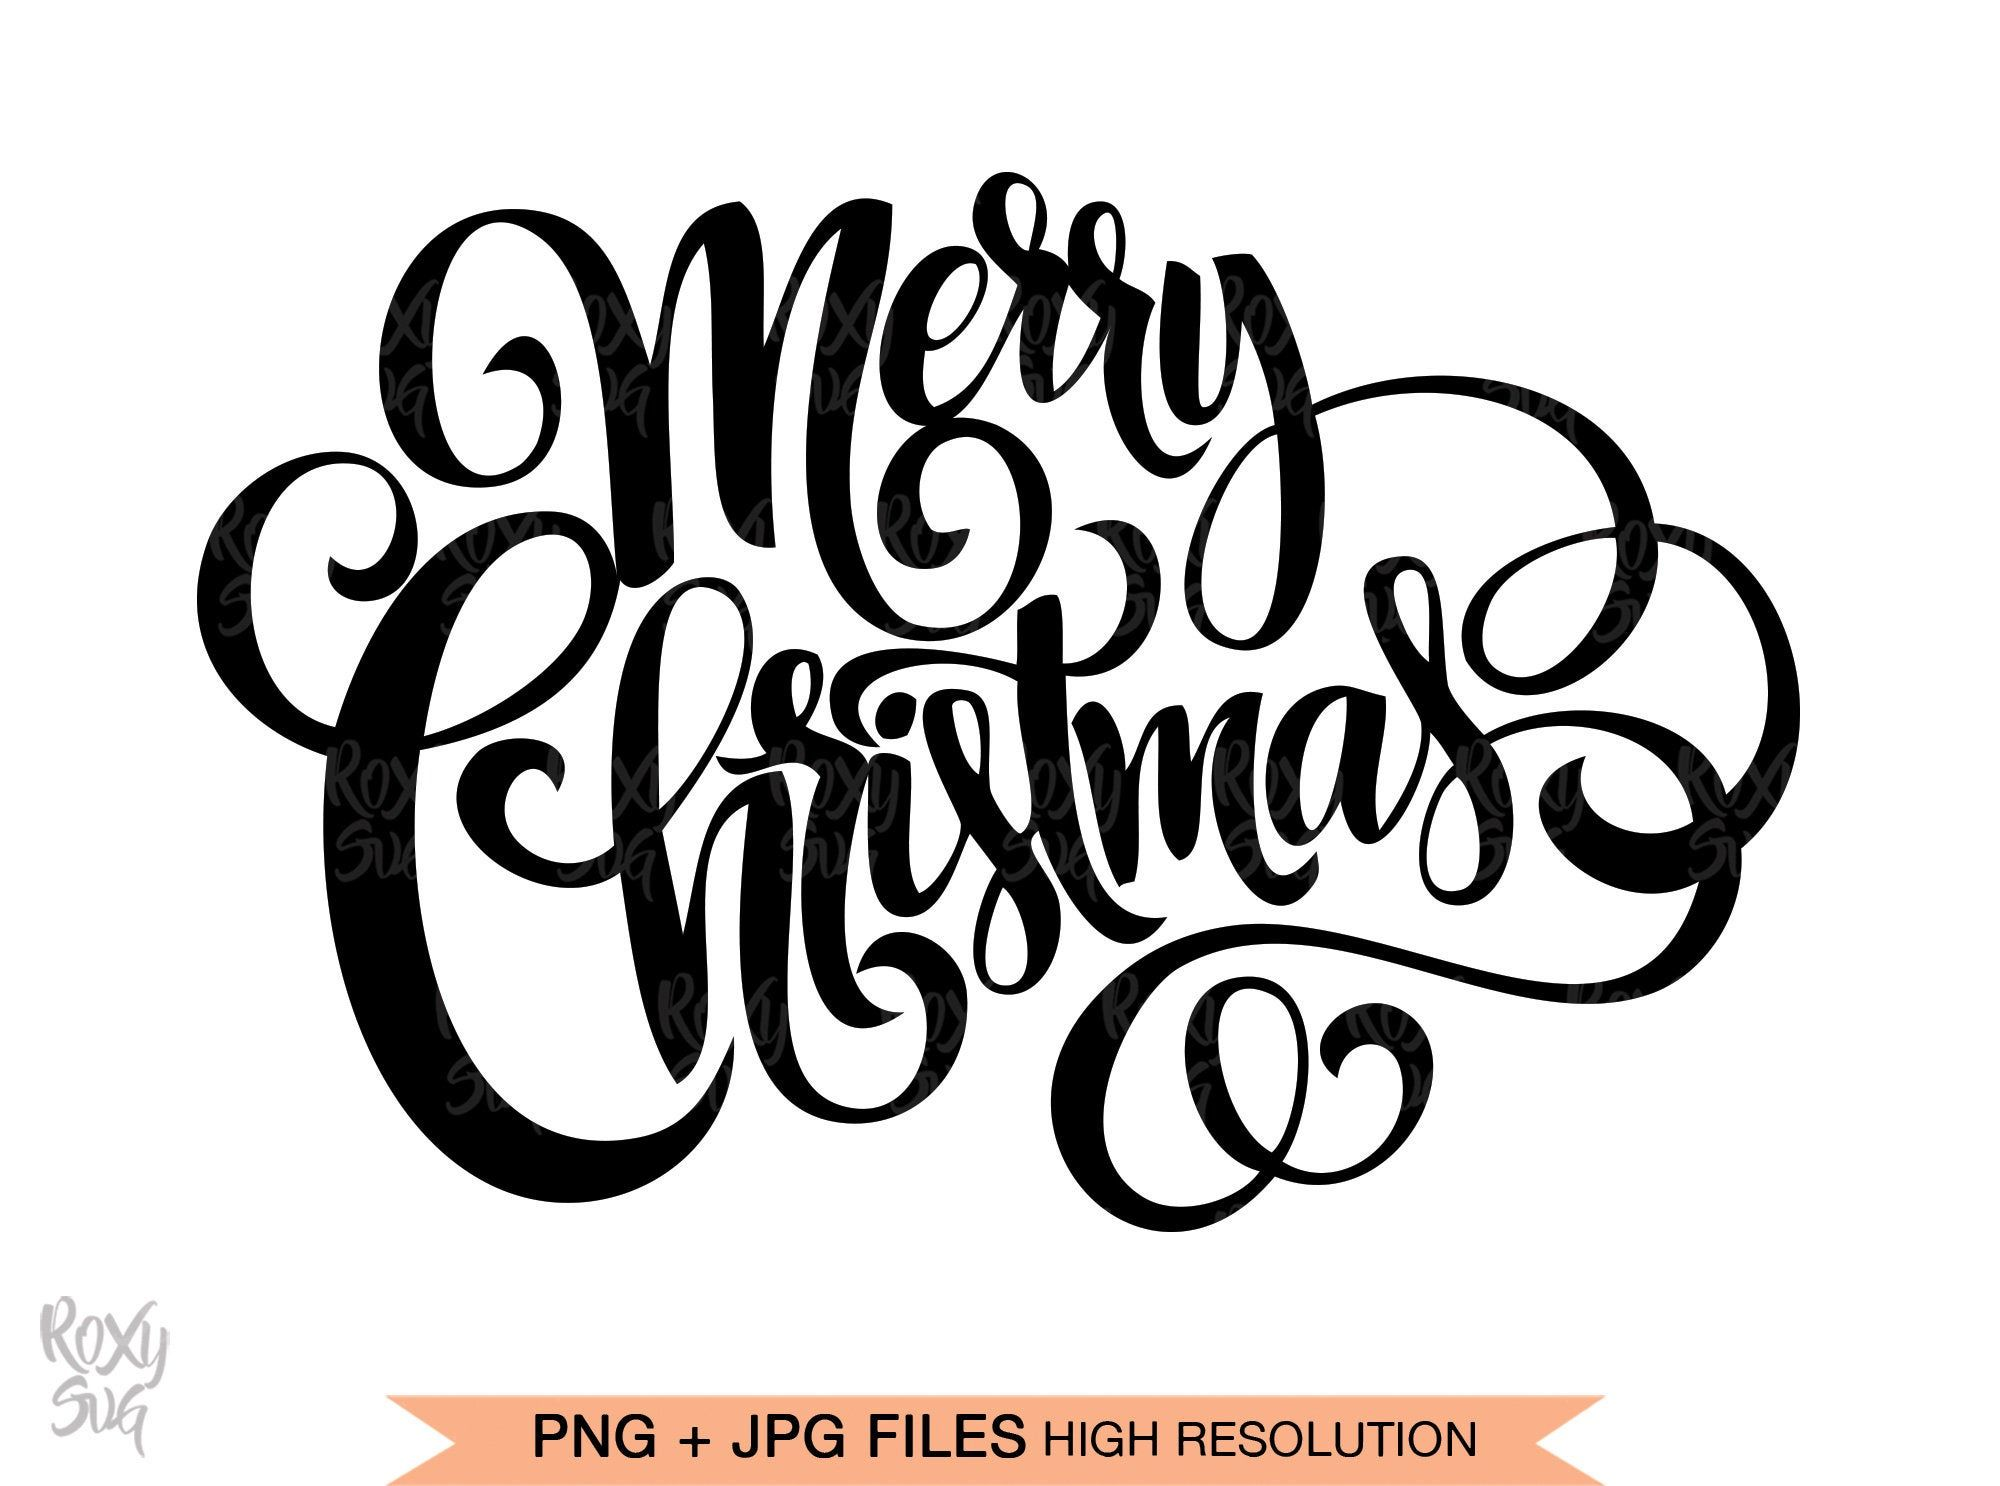 Merry Christmas Ya Filty Animal SVG Files For Silhouette